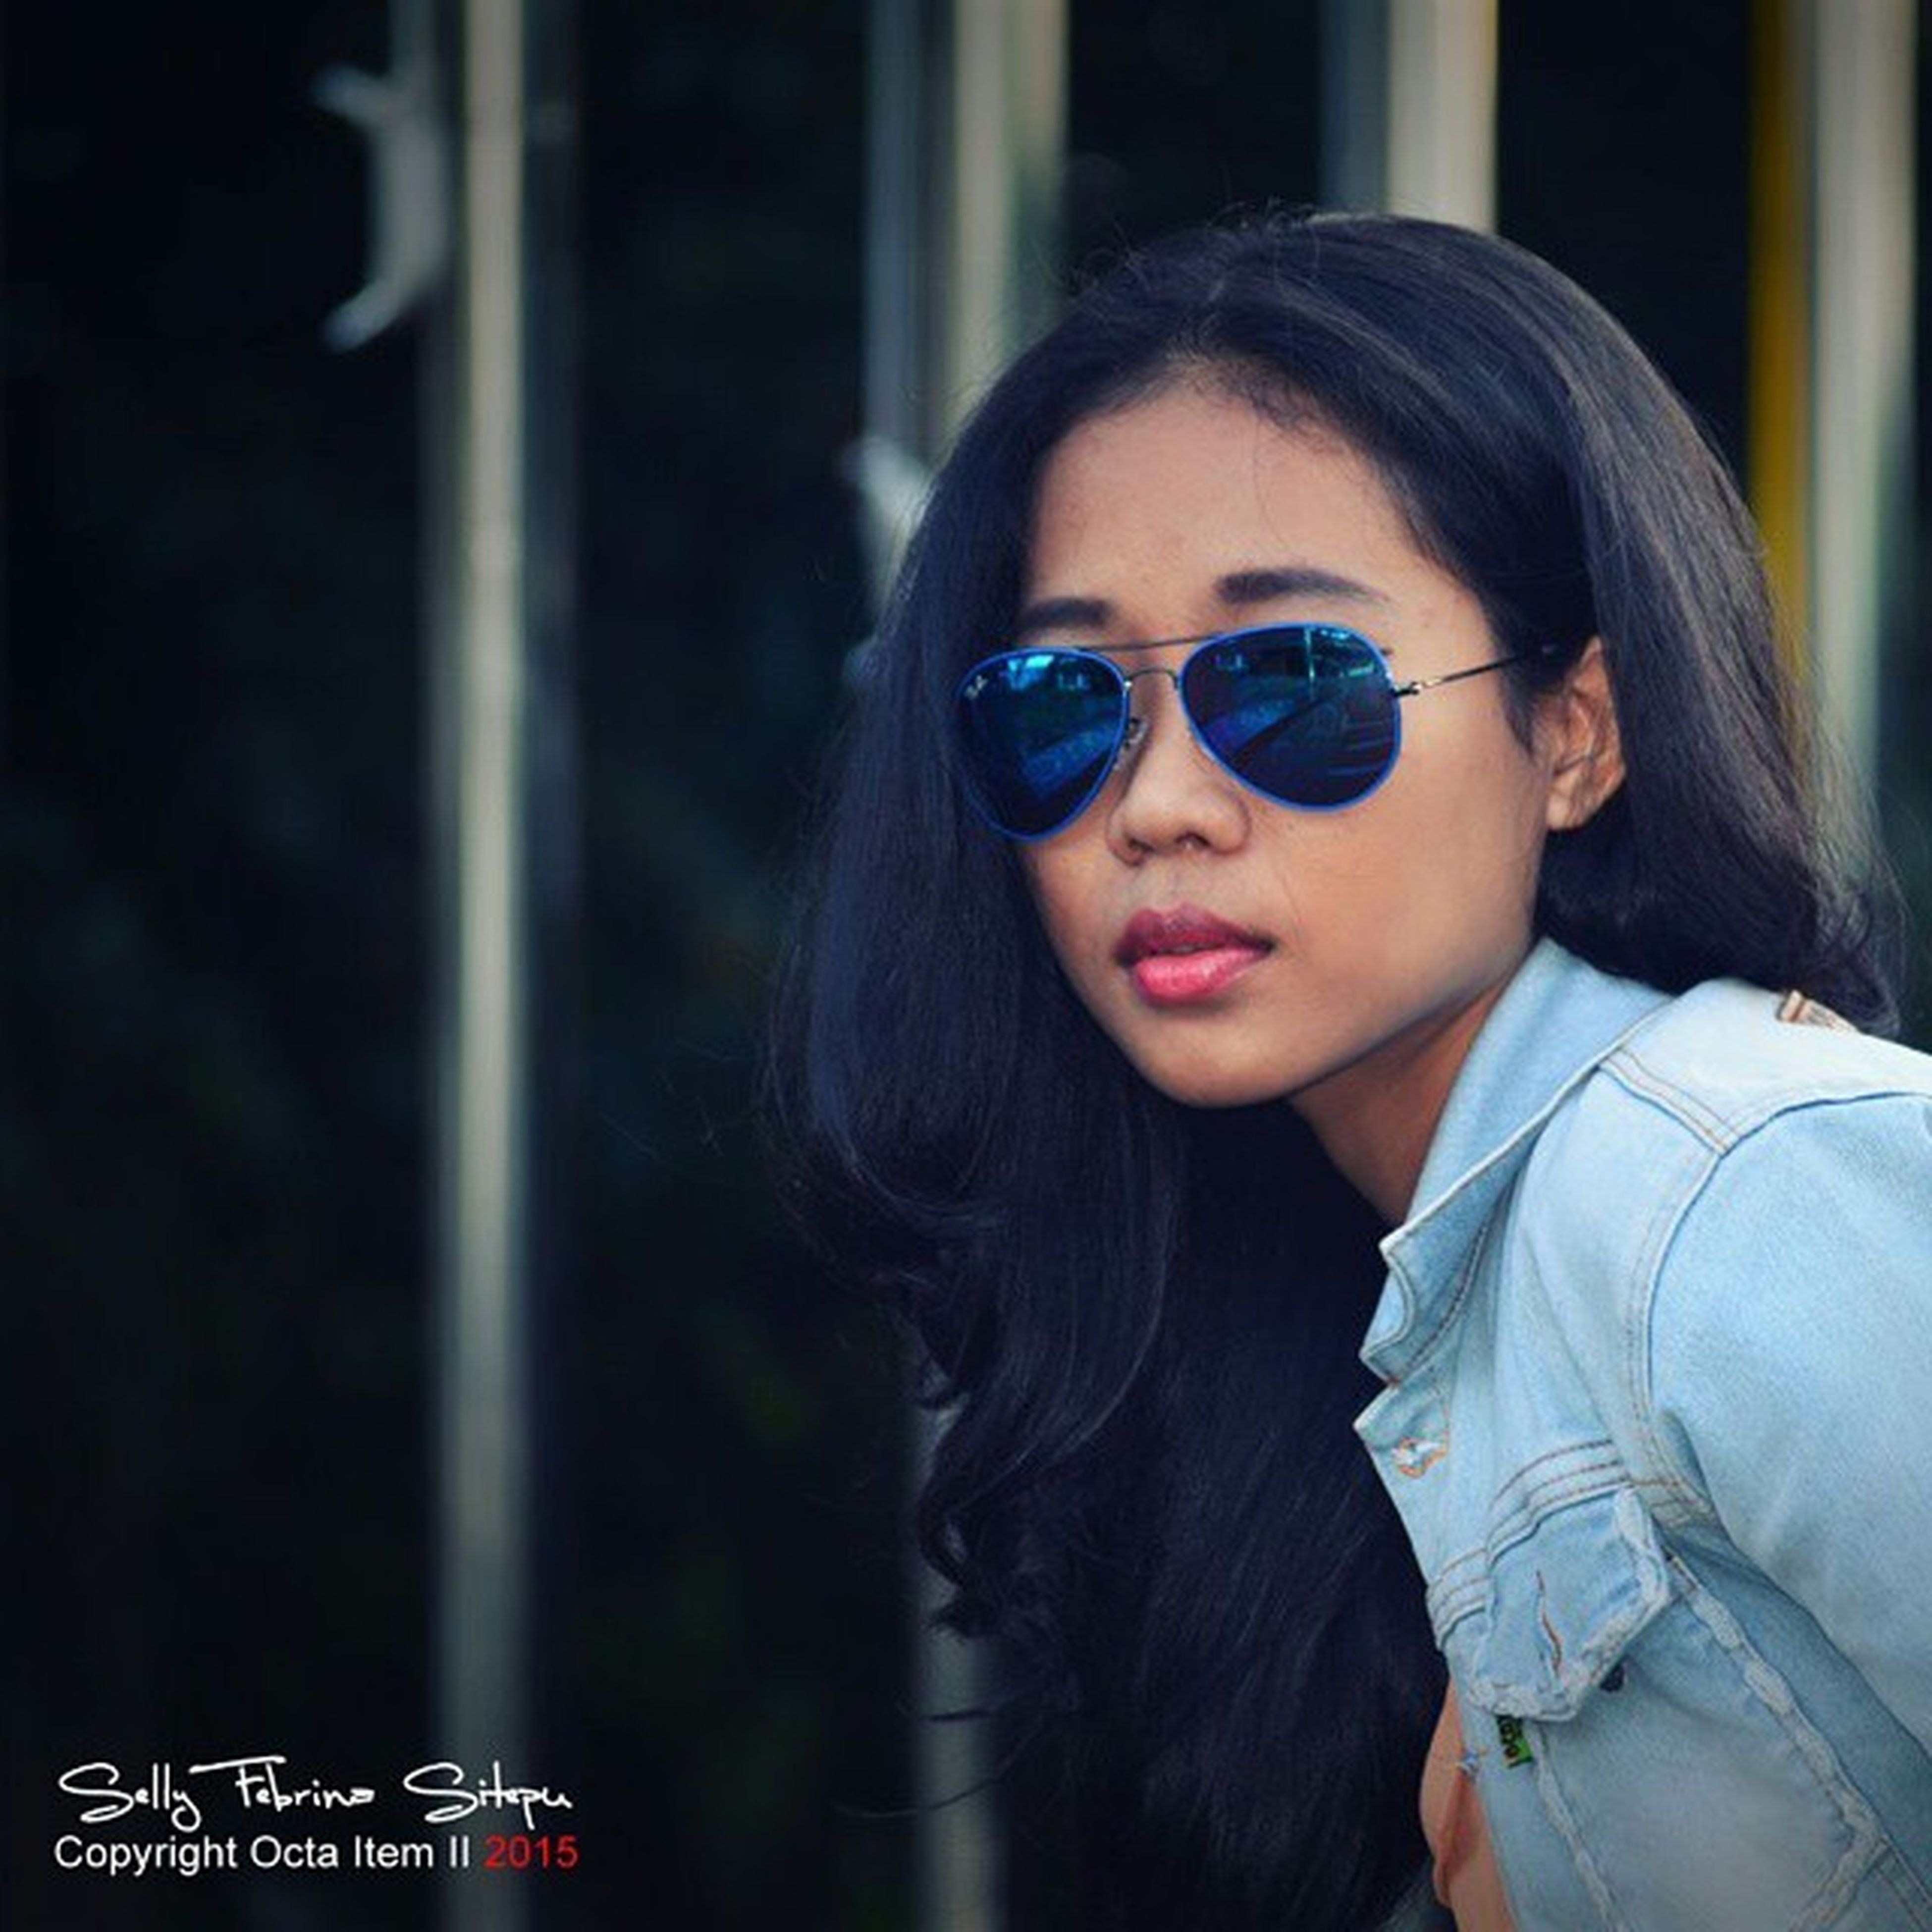 person, young adult, portrait, looking at camera, lifestyles, front view, leisure activity, smiling, casual clothing, headshot, sunglasses, young women, happiness, focus on foreground, waist up, head and shoulders